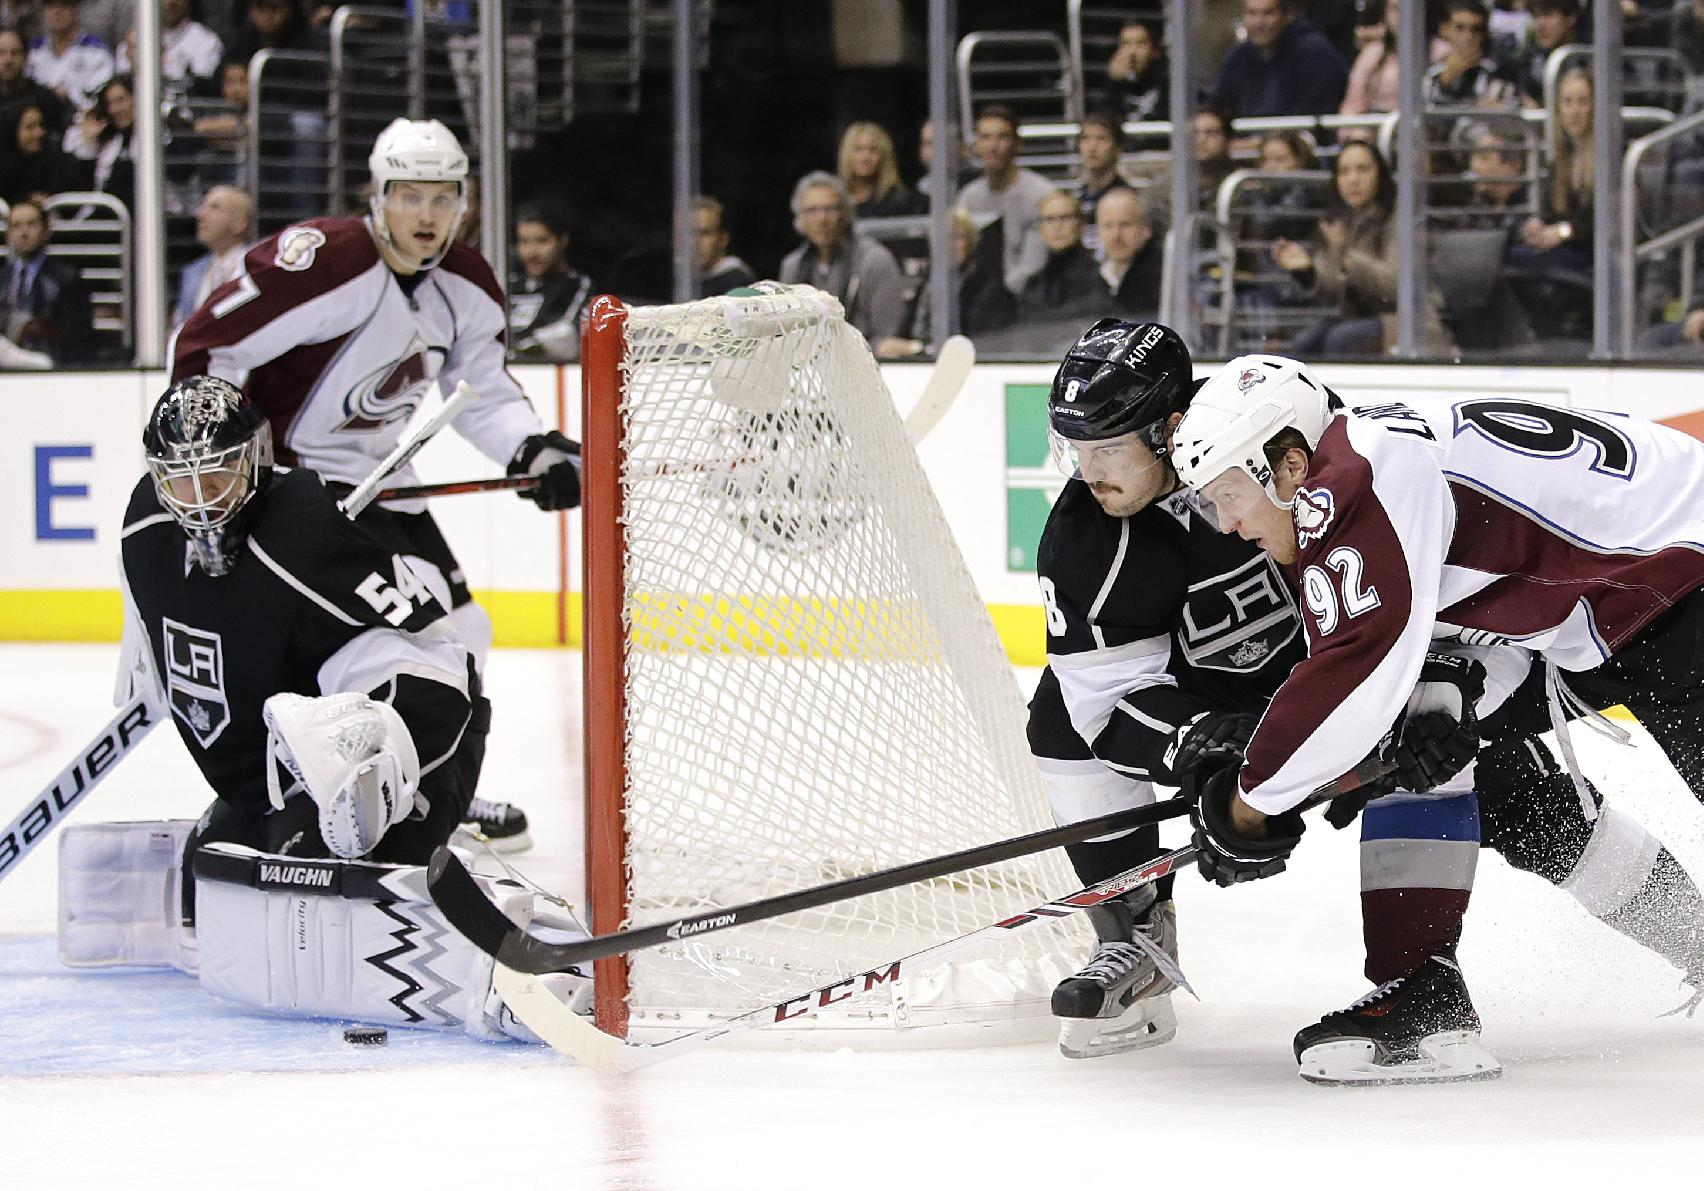 Colorado Avalanche's Gabriel Landeskog(92), of Sweden, tries to score against Los Angeles Kings goalie Ben Scrivens(54) as he is defended by Los Angeles Kings' Drew Doughty(8) during the third period of an NHL hockey game on Saturday, Nov. 23, 2013, in Los Angeles. The Avalanche won 1-0 in overtime